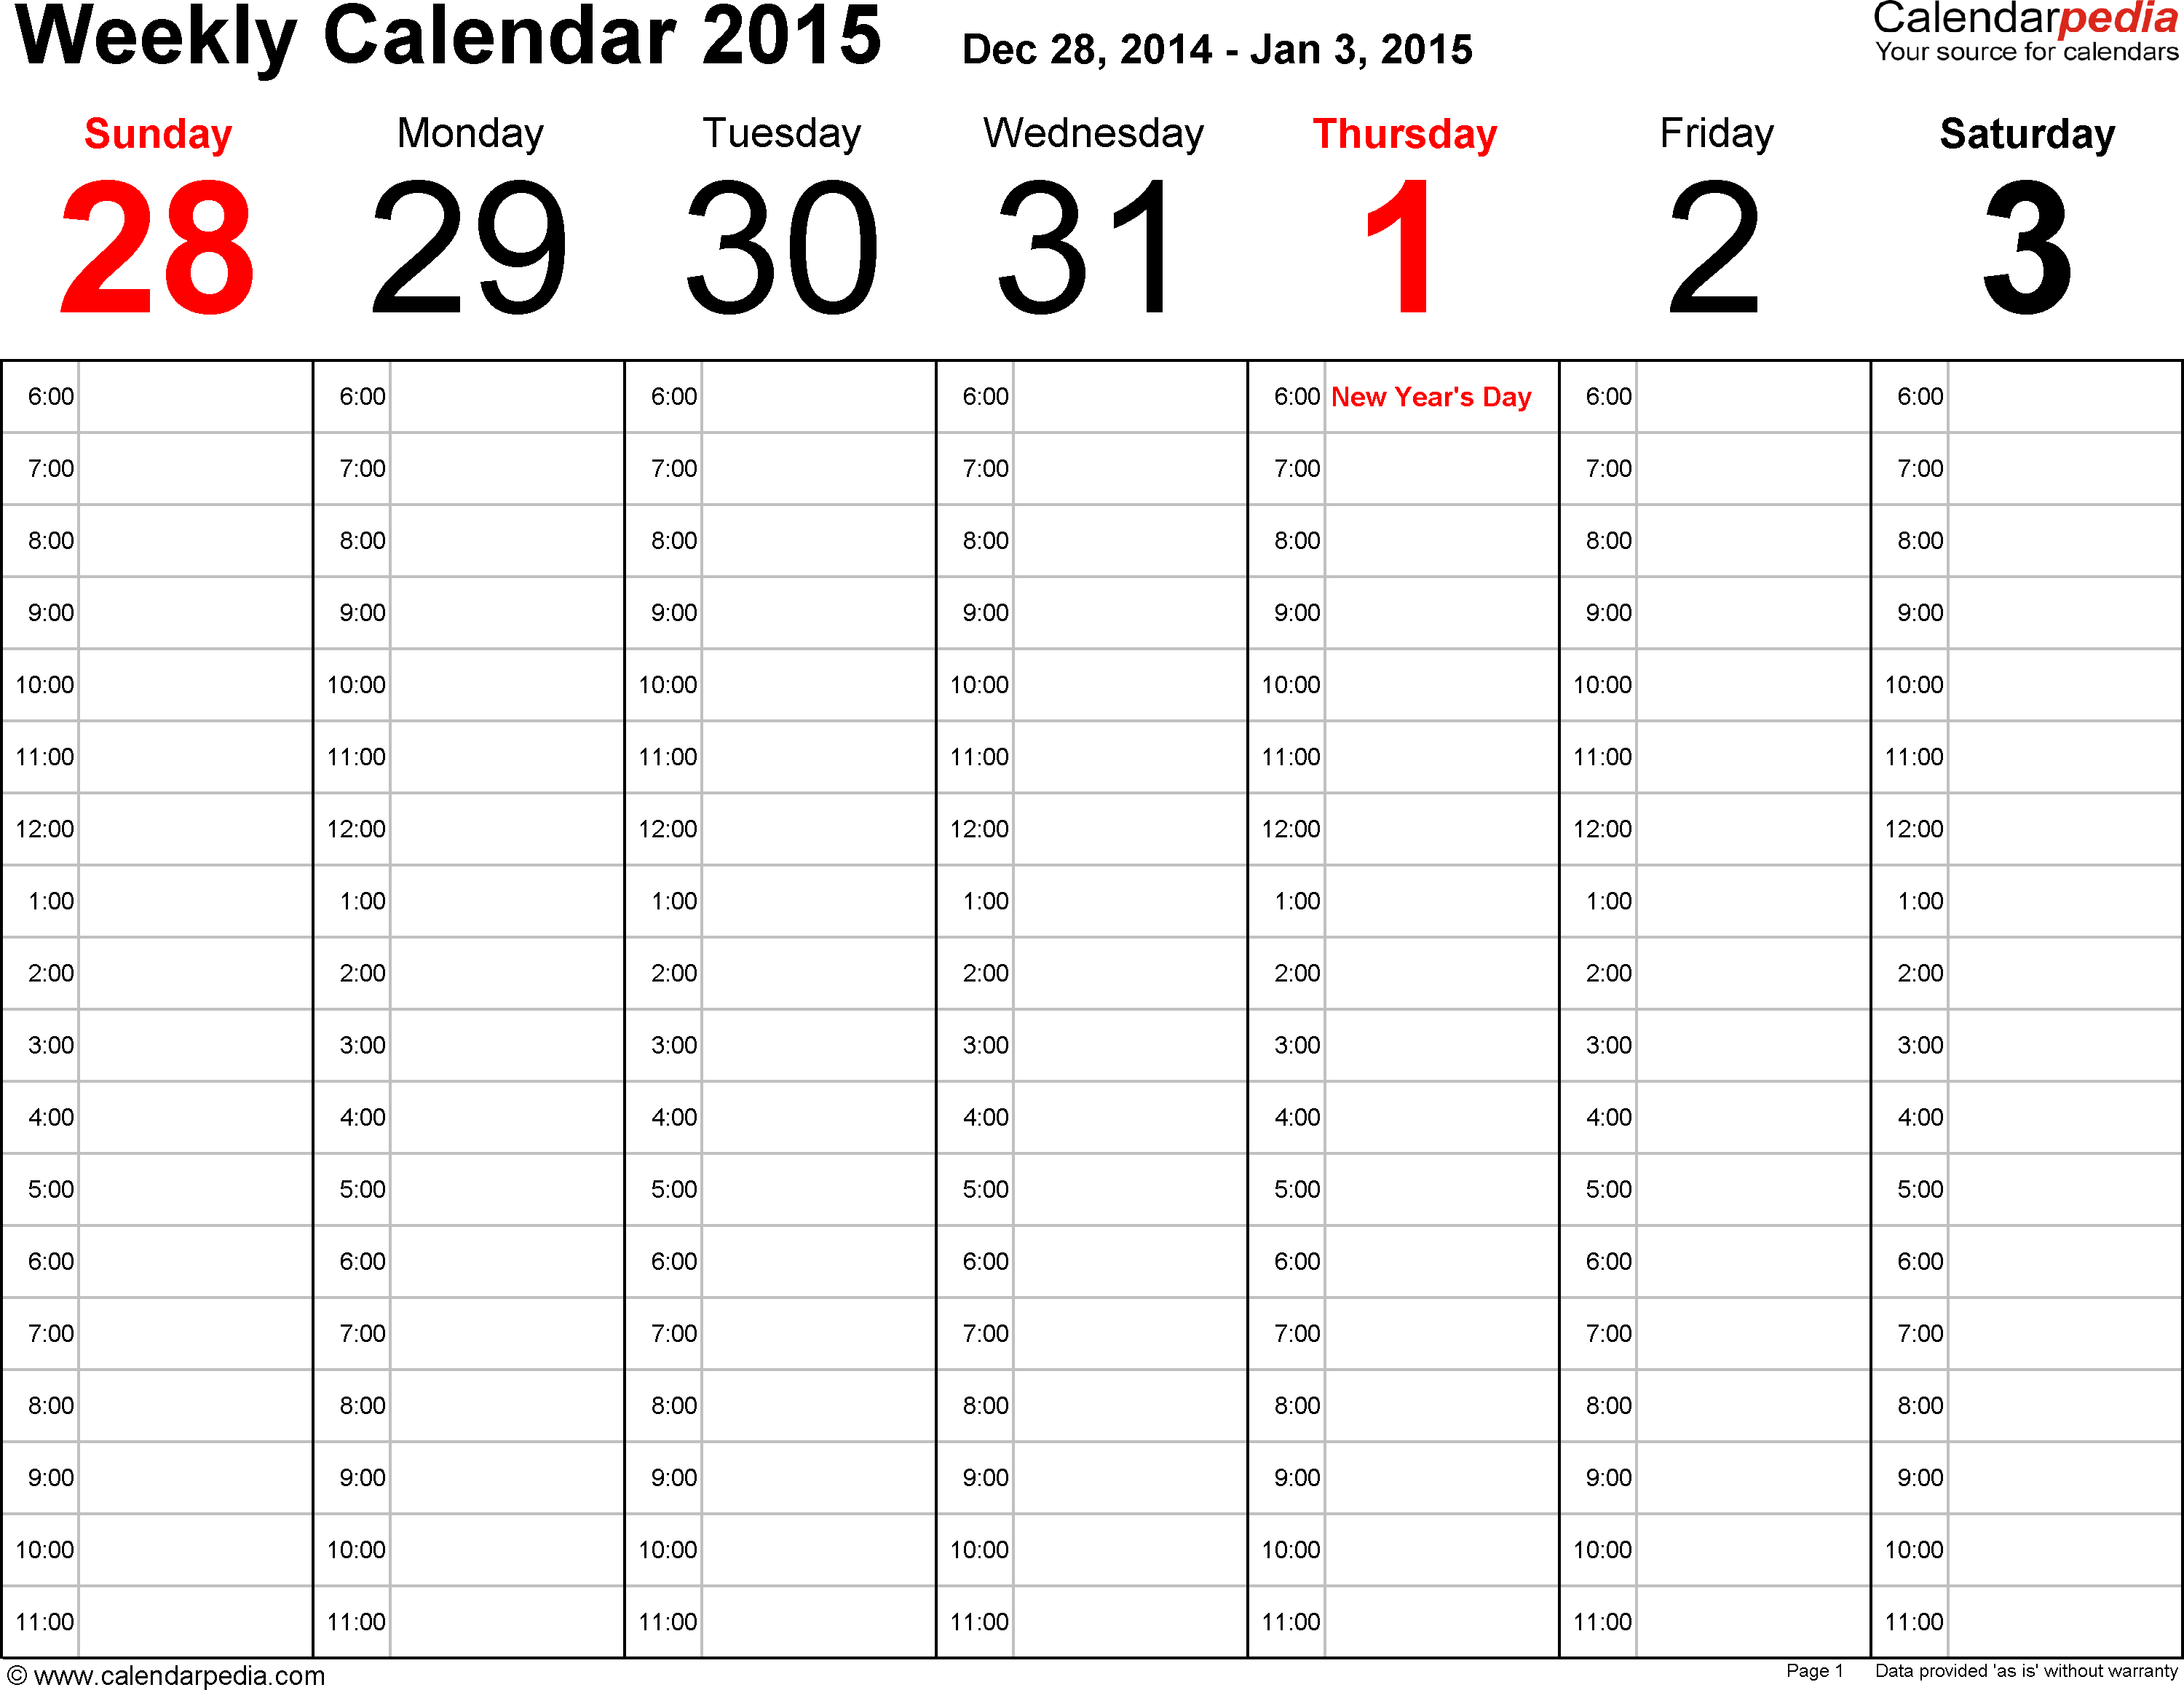 Weekly calendar 2015: template for Excel version 1, landscape, 53 pages, time management layout (18 hours per day, 6am to 11.59pm)